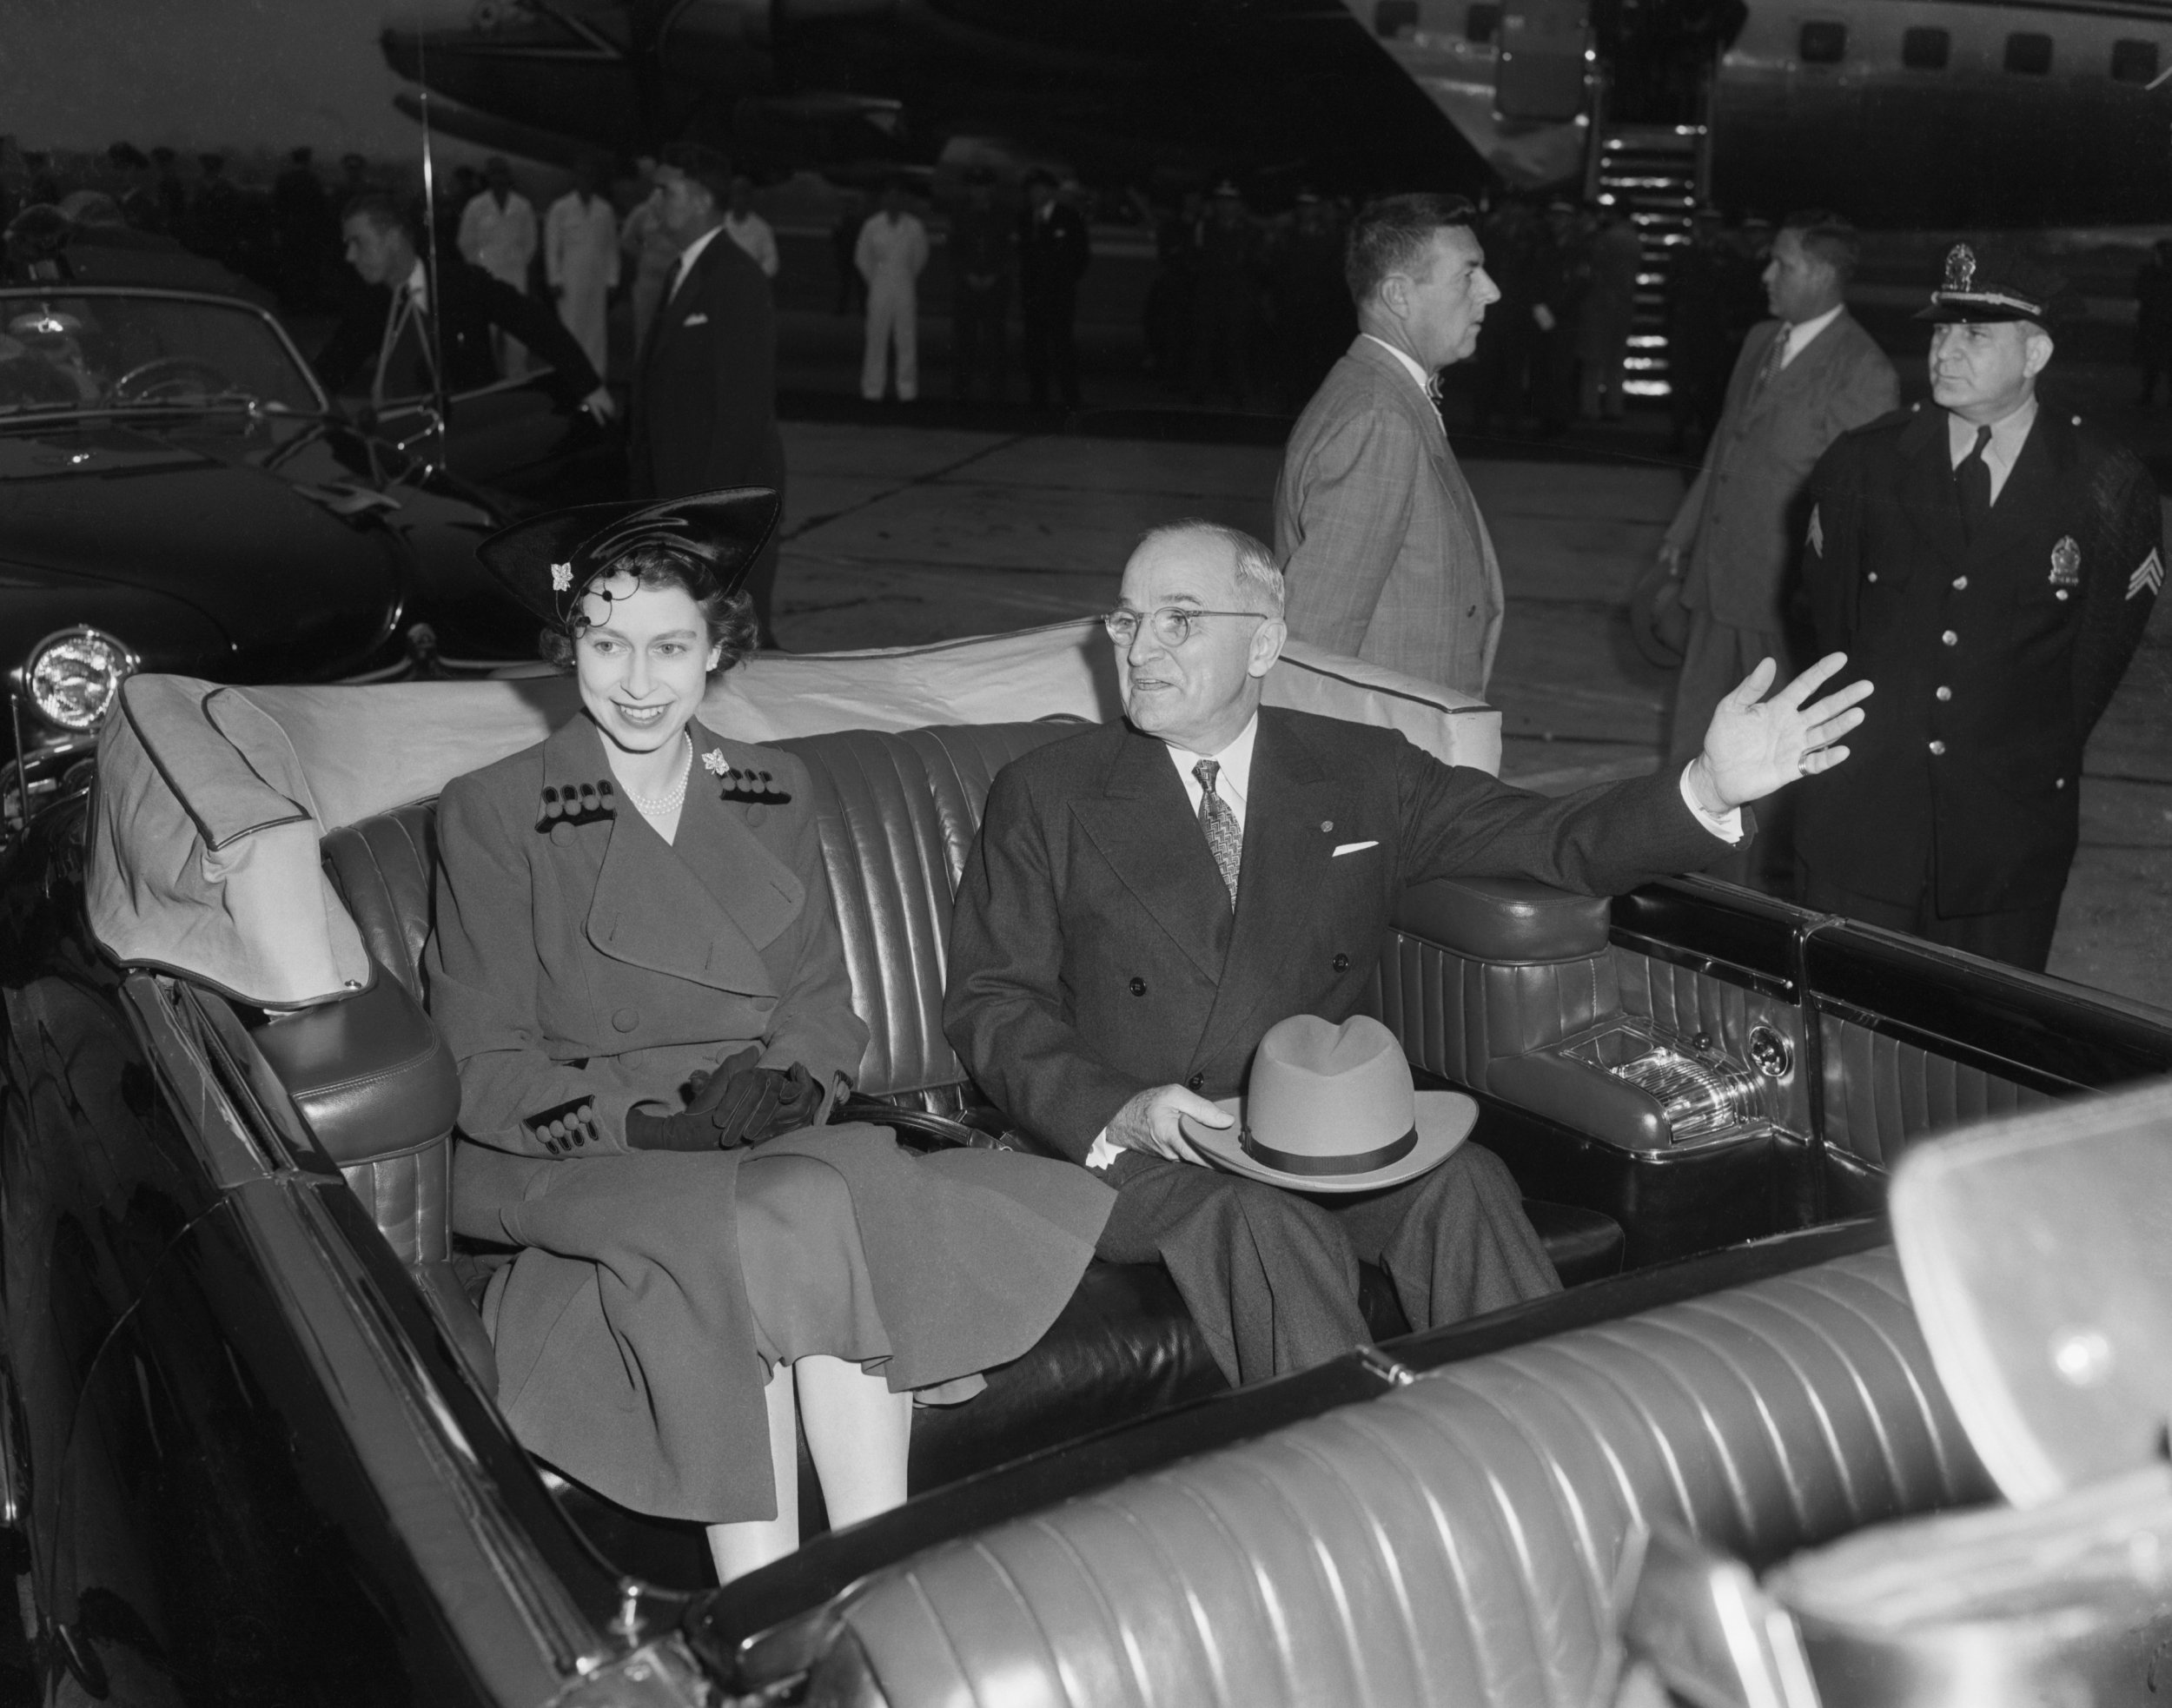 """(Original Caption) 10/31/1951-Washington, D.C.: President Harry S. Truman and Britain's Princess Elizabeth are shown as their motorcade got underway following the reception ceremony at Washington National Airport today. The Chief Executive welcomed Elizabeth and her husband, Prince Philip, Duke of Edinburgh, with the warm hope that """"when you leave you will like us even better than when you came."""""""